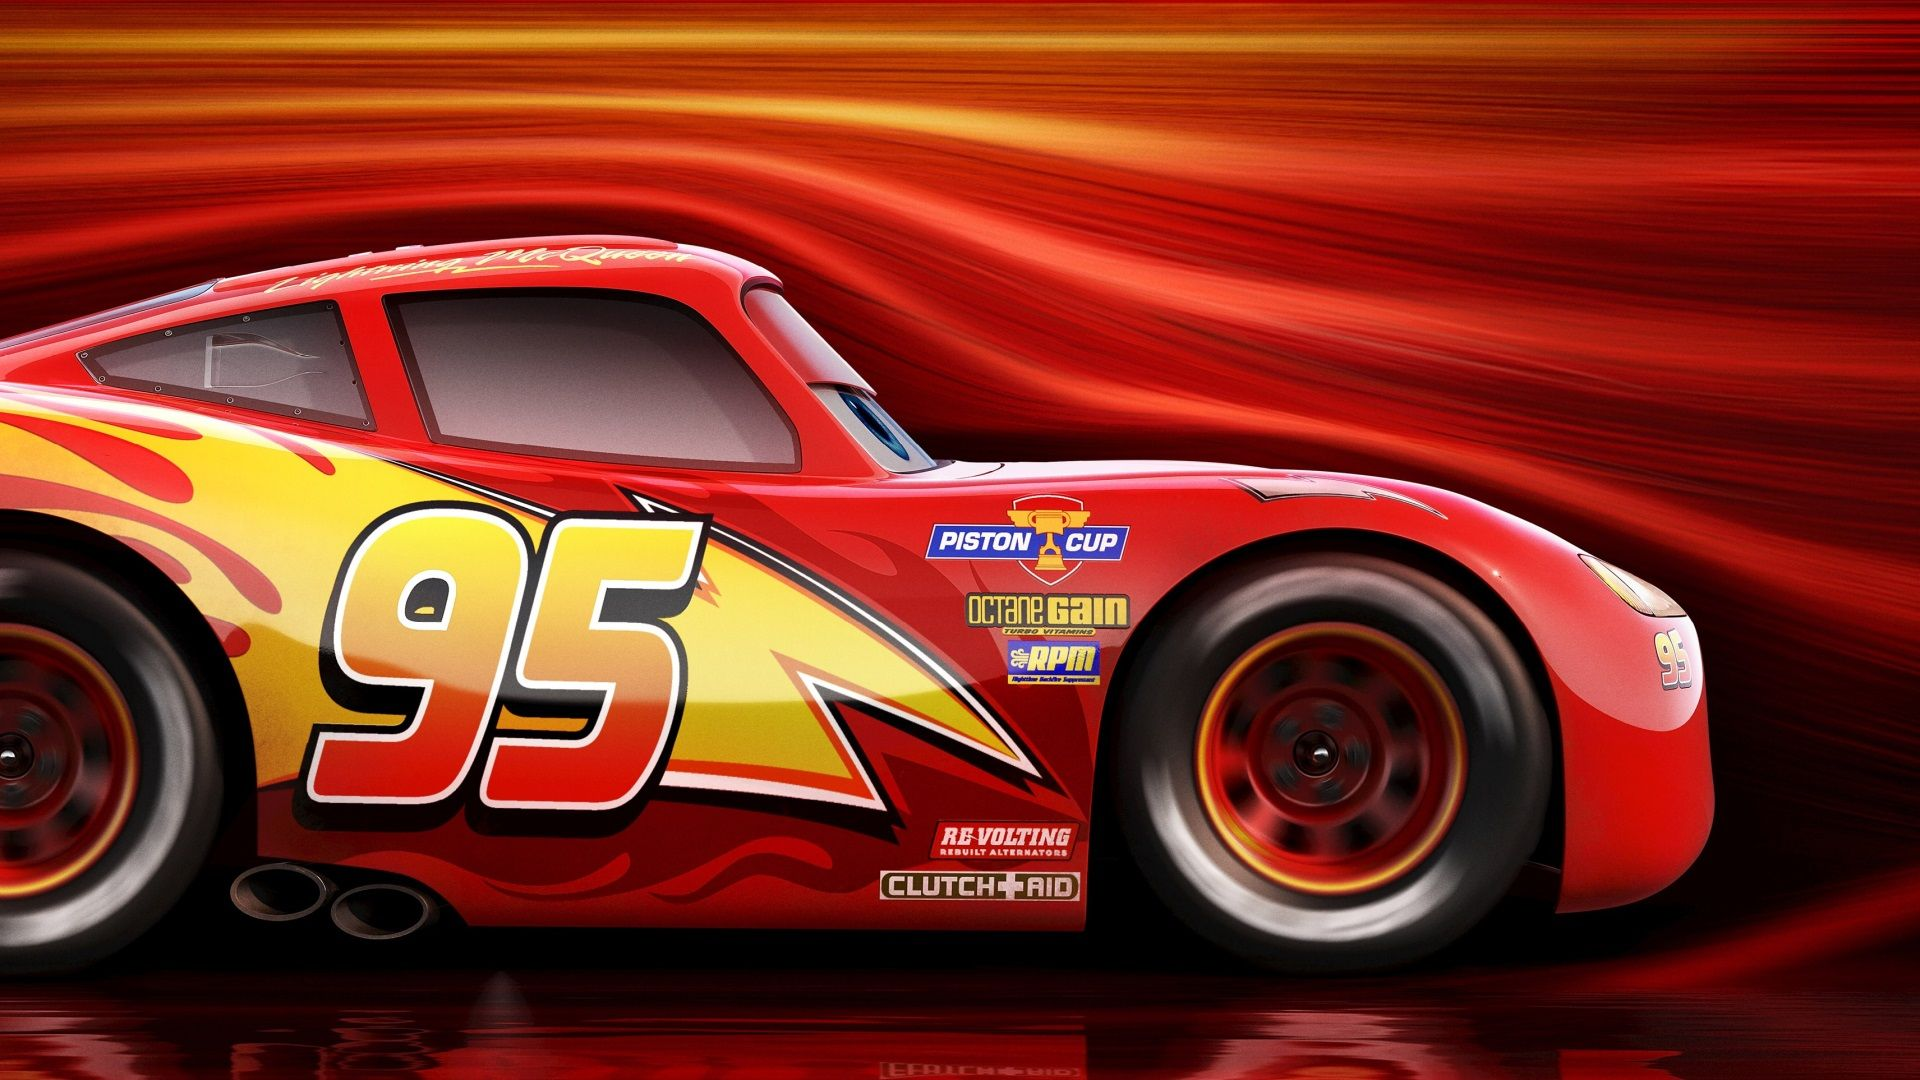 1920x1080 Lightning Mcqueen High Def Wallpaper For Mac Lightning Mcqueen Cars Movie Cars 3 Lightning Mcqueen